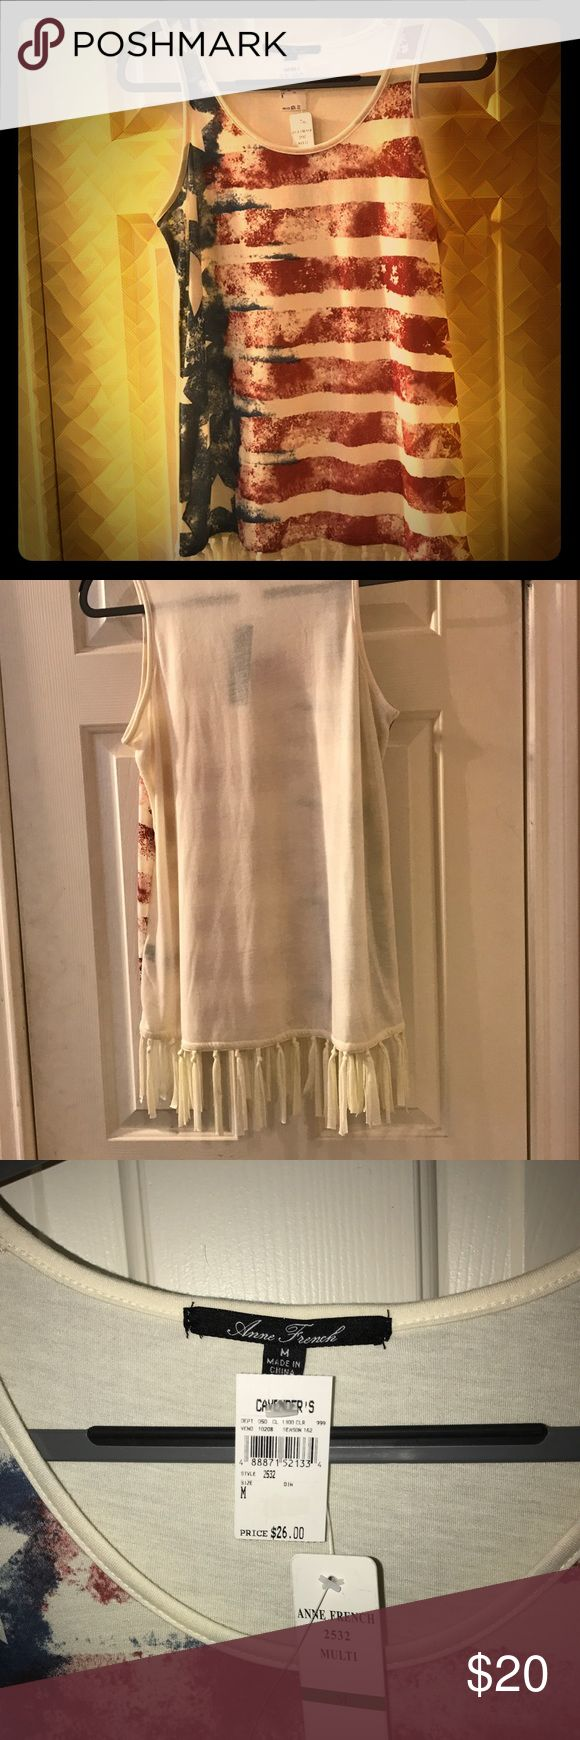 Anne French patriotic tank top with fringe size M Anne French tank top with American flag design on front and fringe around bottom hem. Brand new - never been worn. NWT Anne French Tops Tank Tops